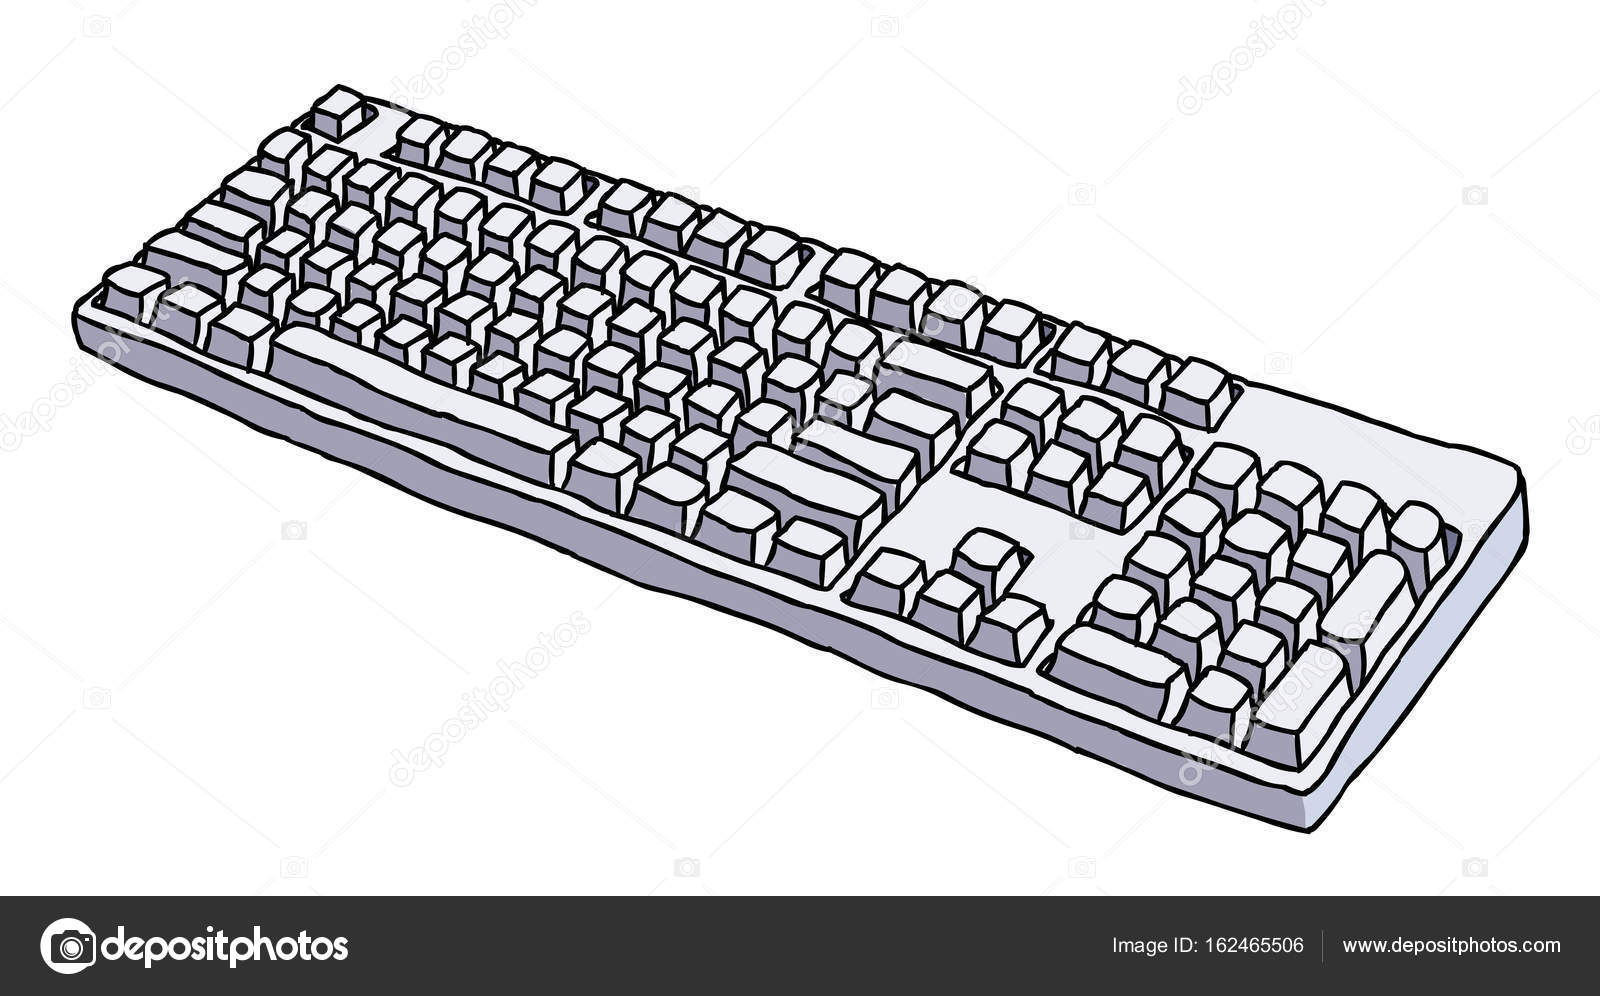 Images Keyboard Cartoon Image Cartoon Image Of Keyboard Icon Stock Vector C Lkeskinen0 162465506